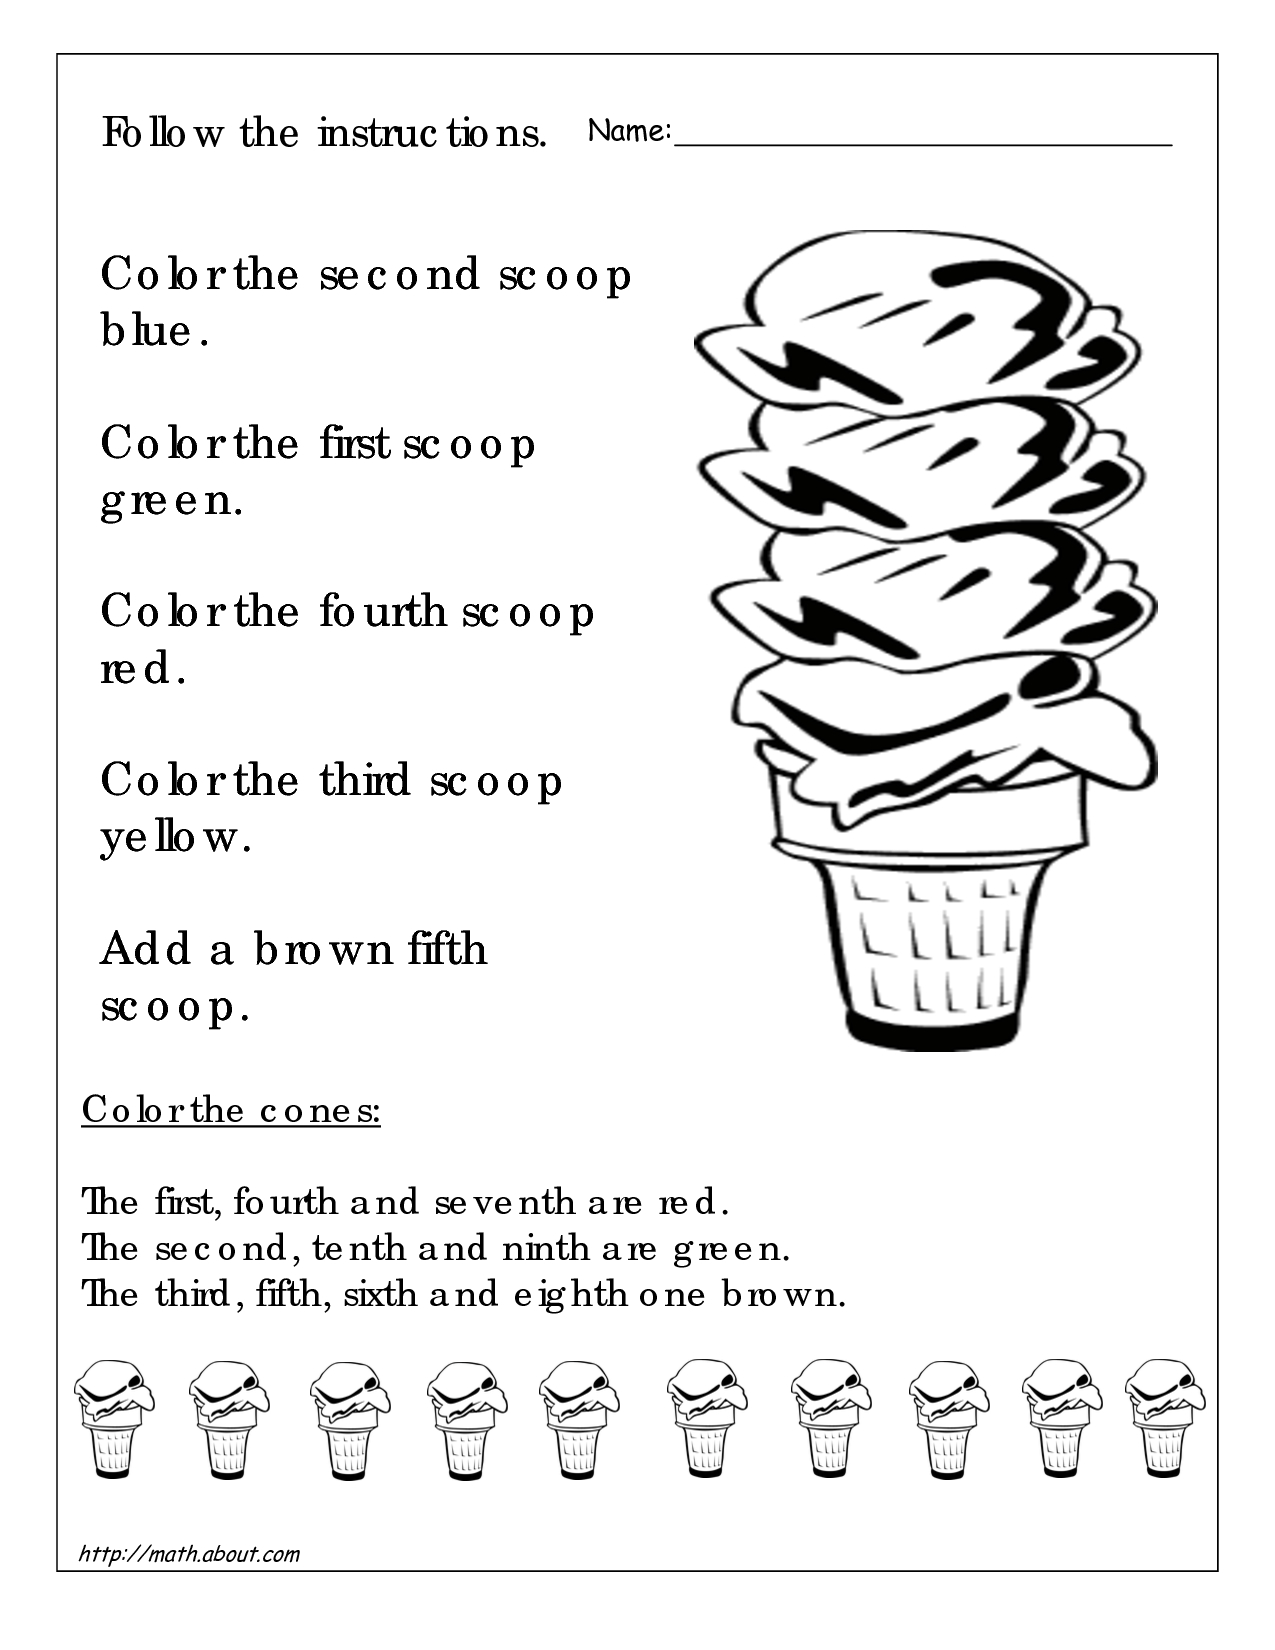 Printable Puzzles For 3rd Grade